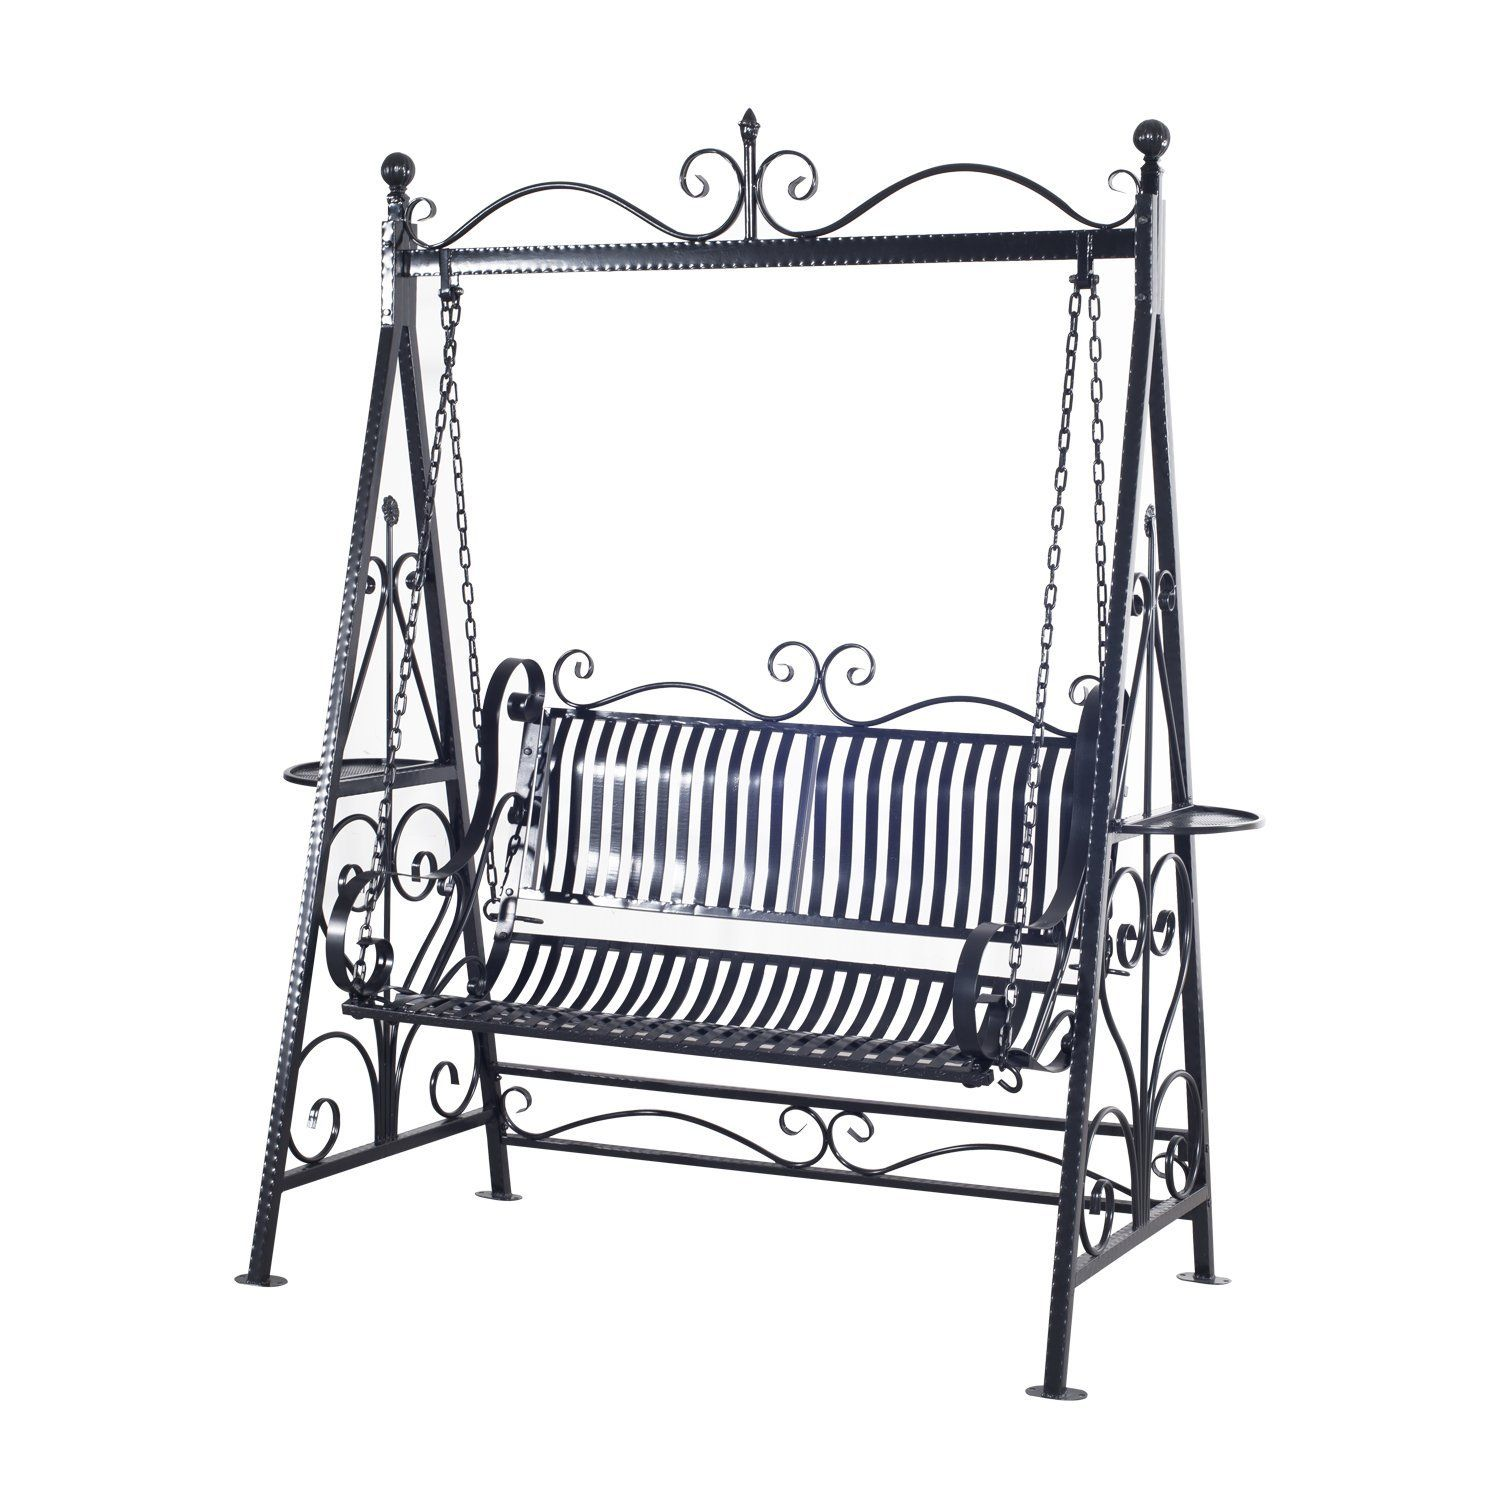 Outsunny outdoor garden patio cast iron metal vintage style swing